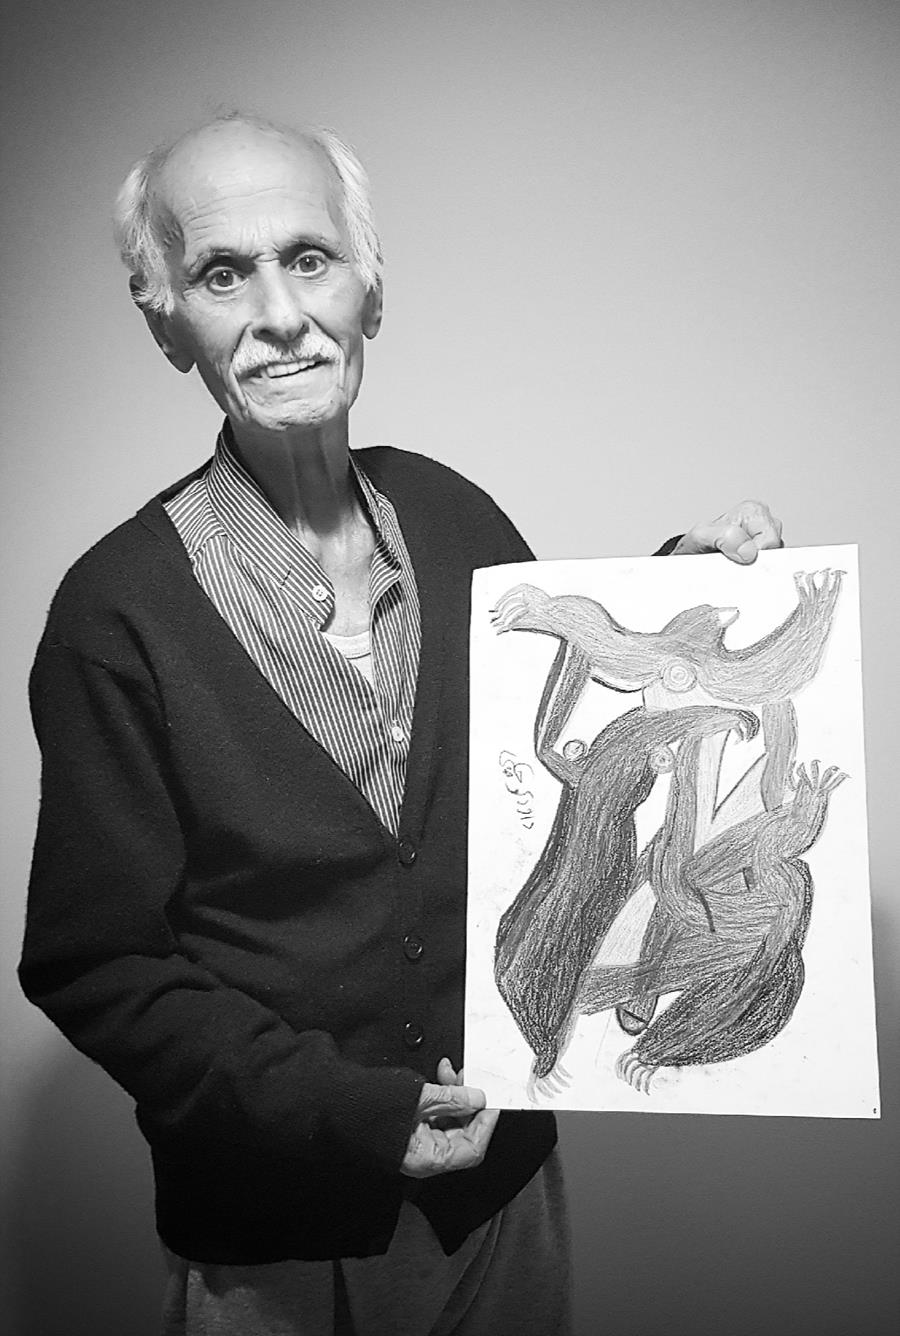 Photo courtesy of Morteza Zaheedi, Tehran, Iran